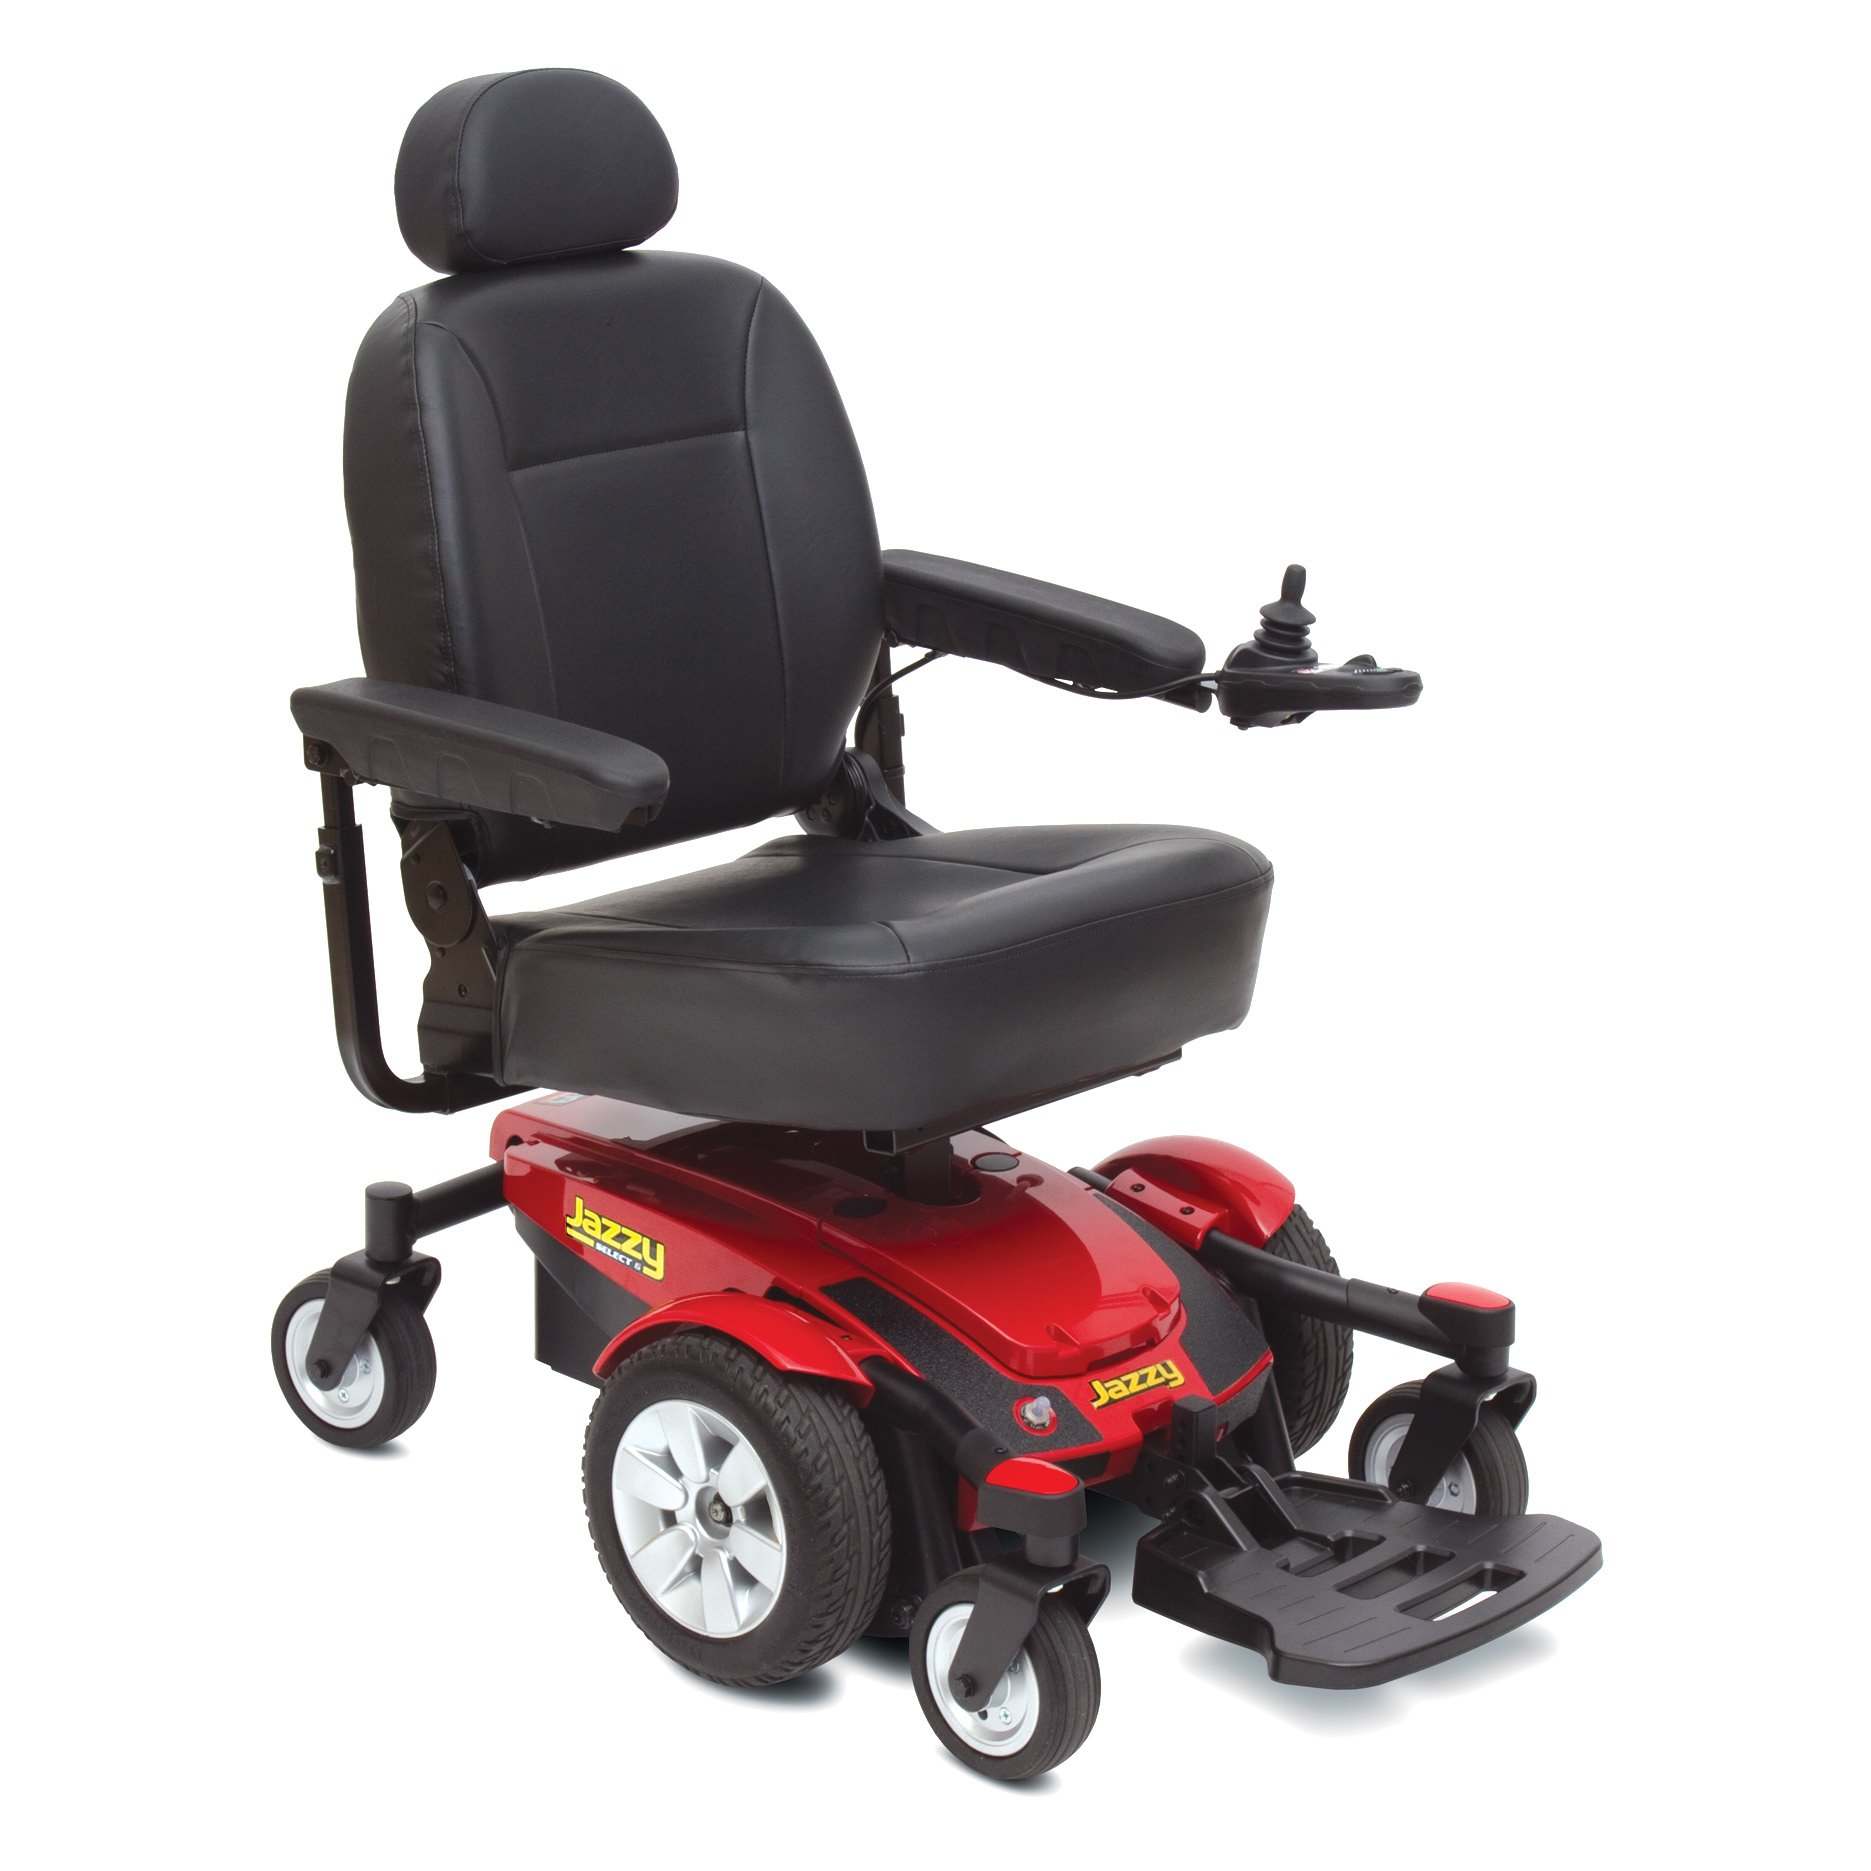 Medical Equipment Amp Supplies Palos Verdes Wheelchairs